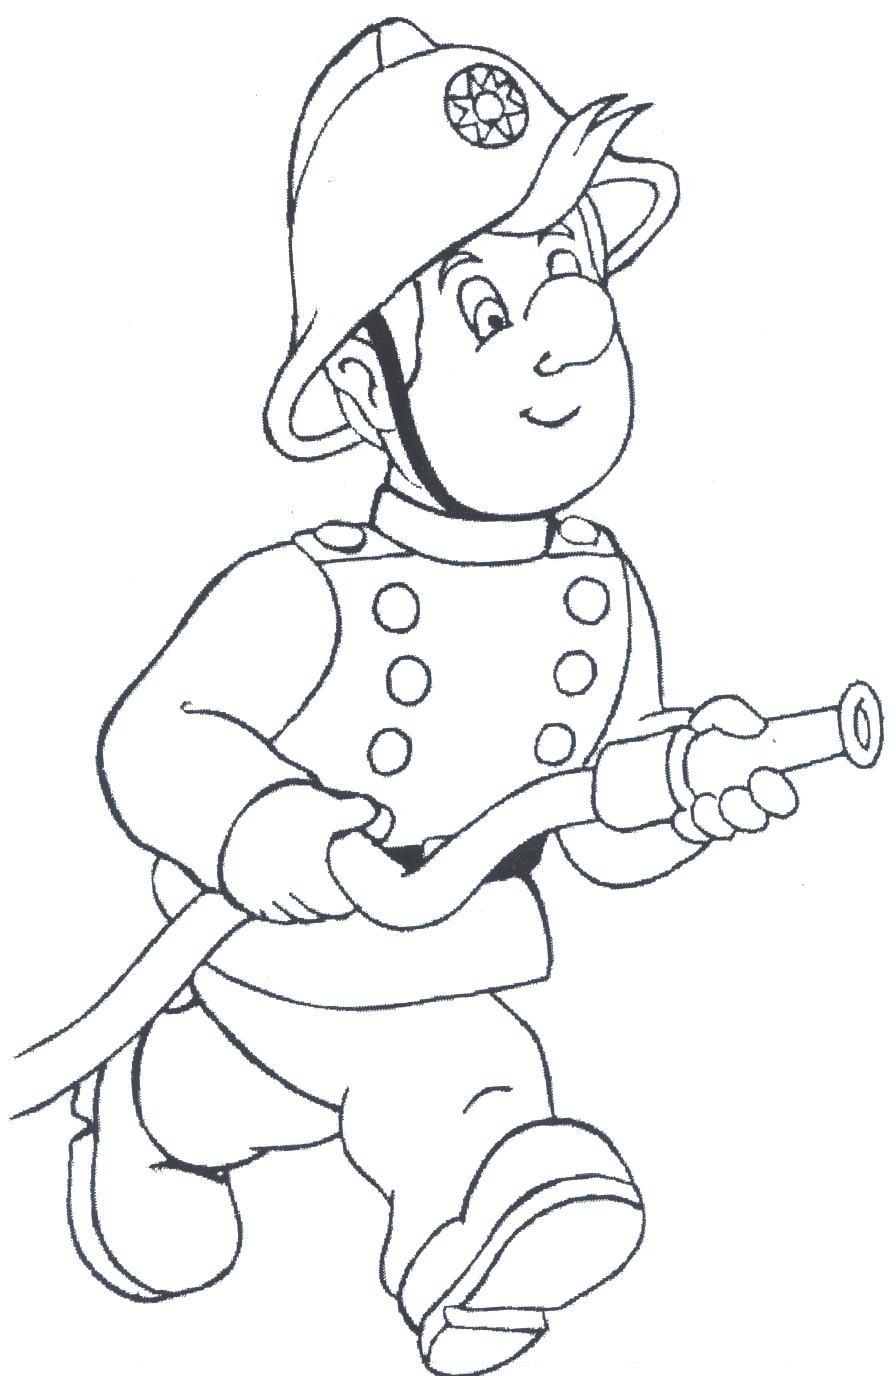 896x1376 Fresh Firefighter Coloring Page Gallery Printable Coloring Sheet